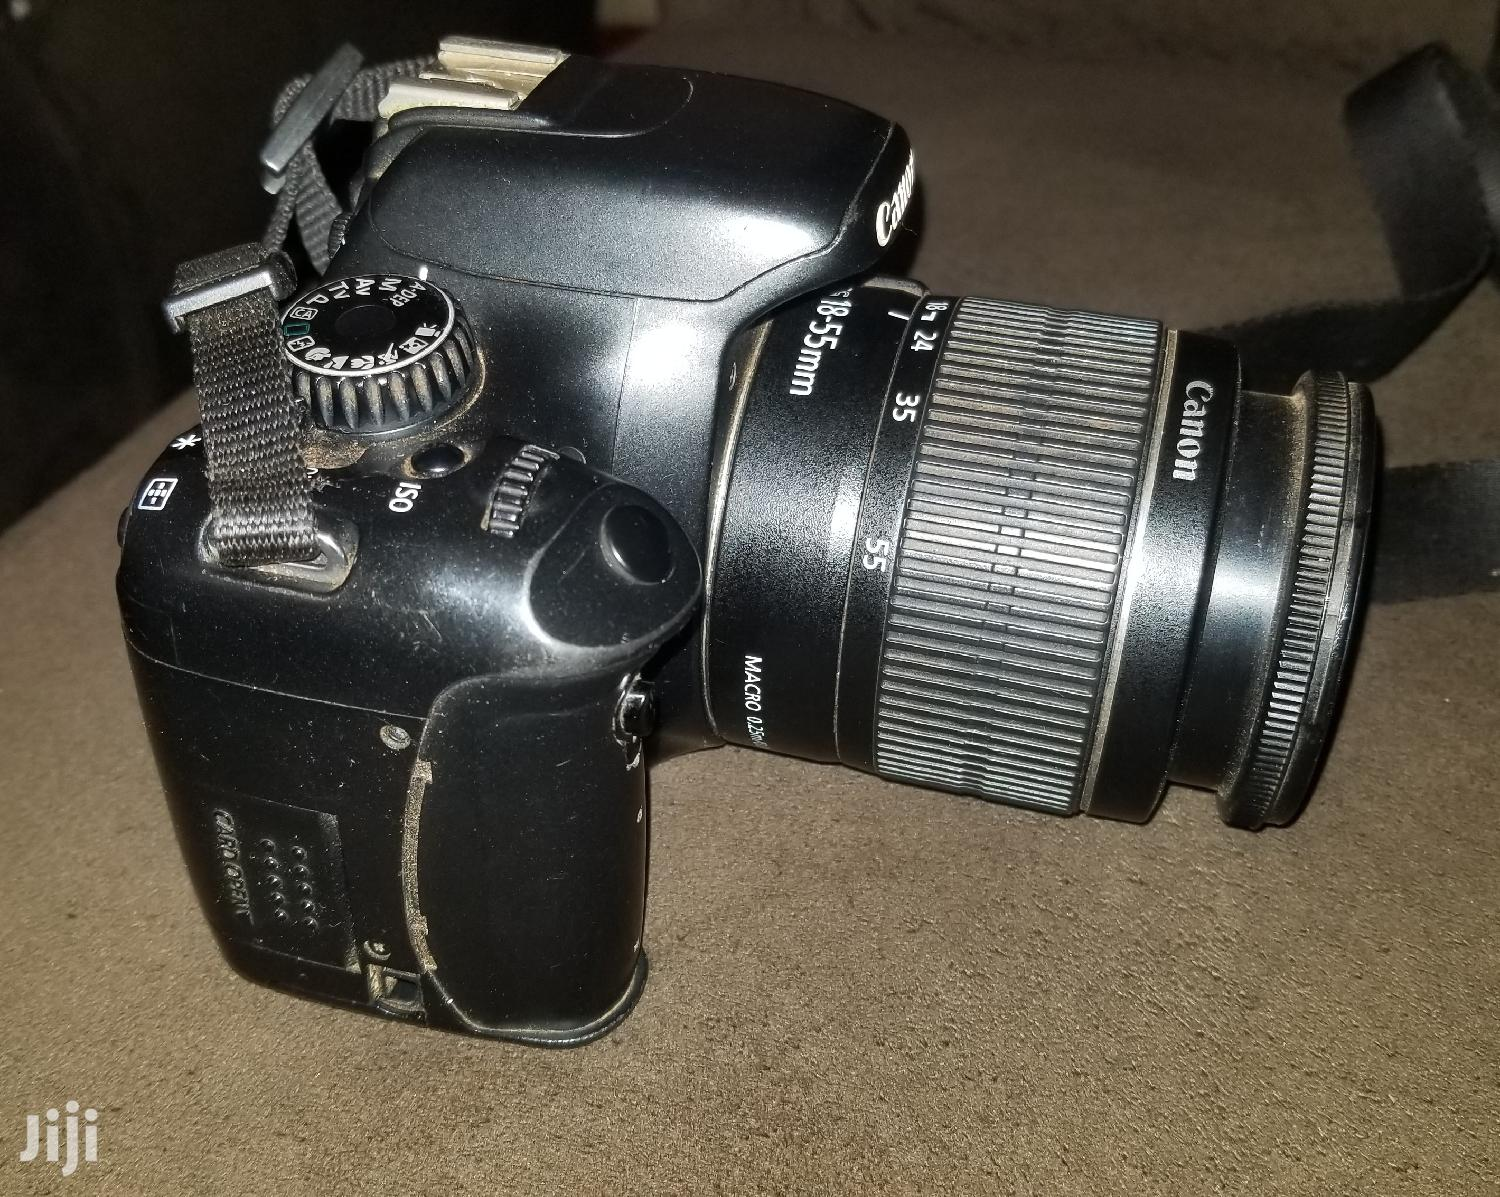 Archive: Canon Eos 550D , Used in Good Condition